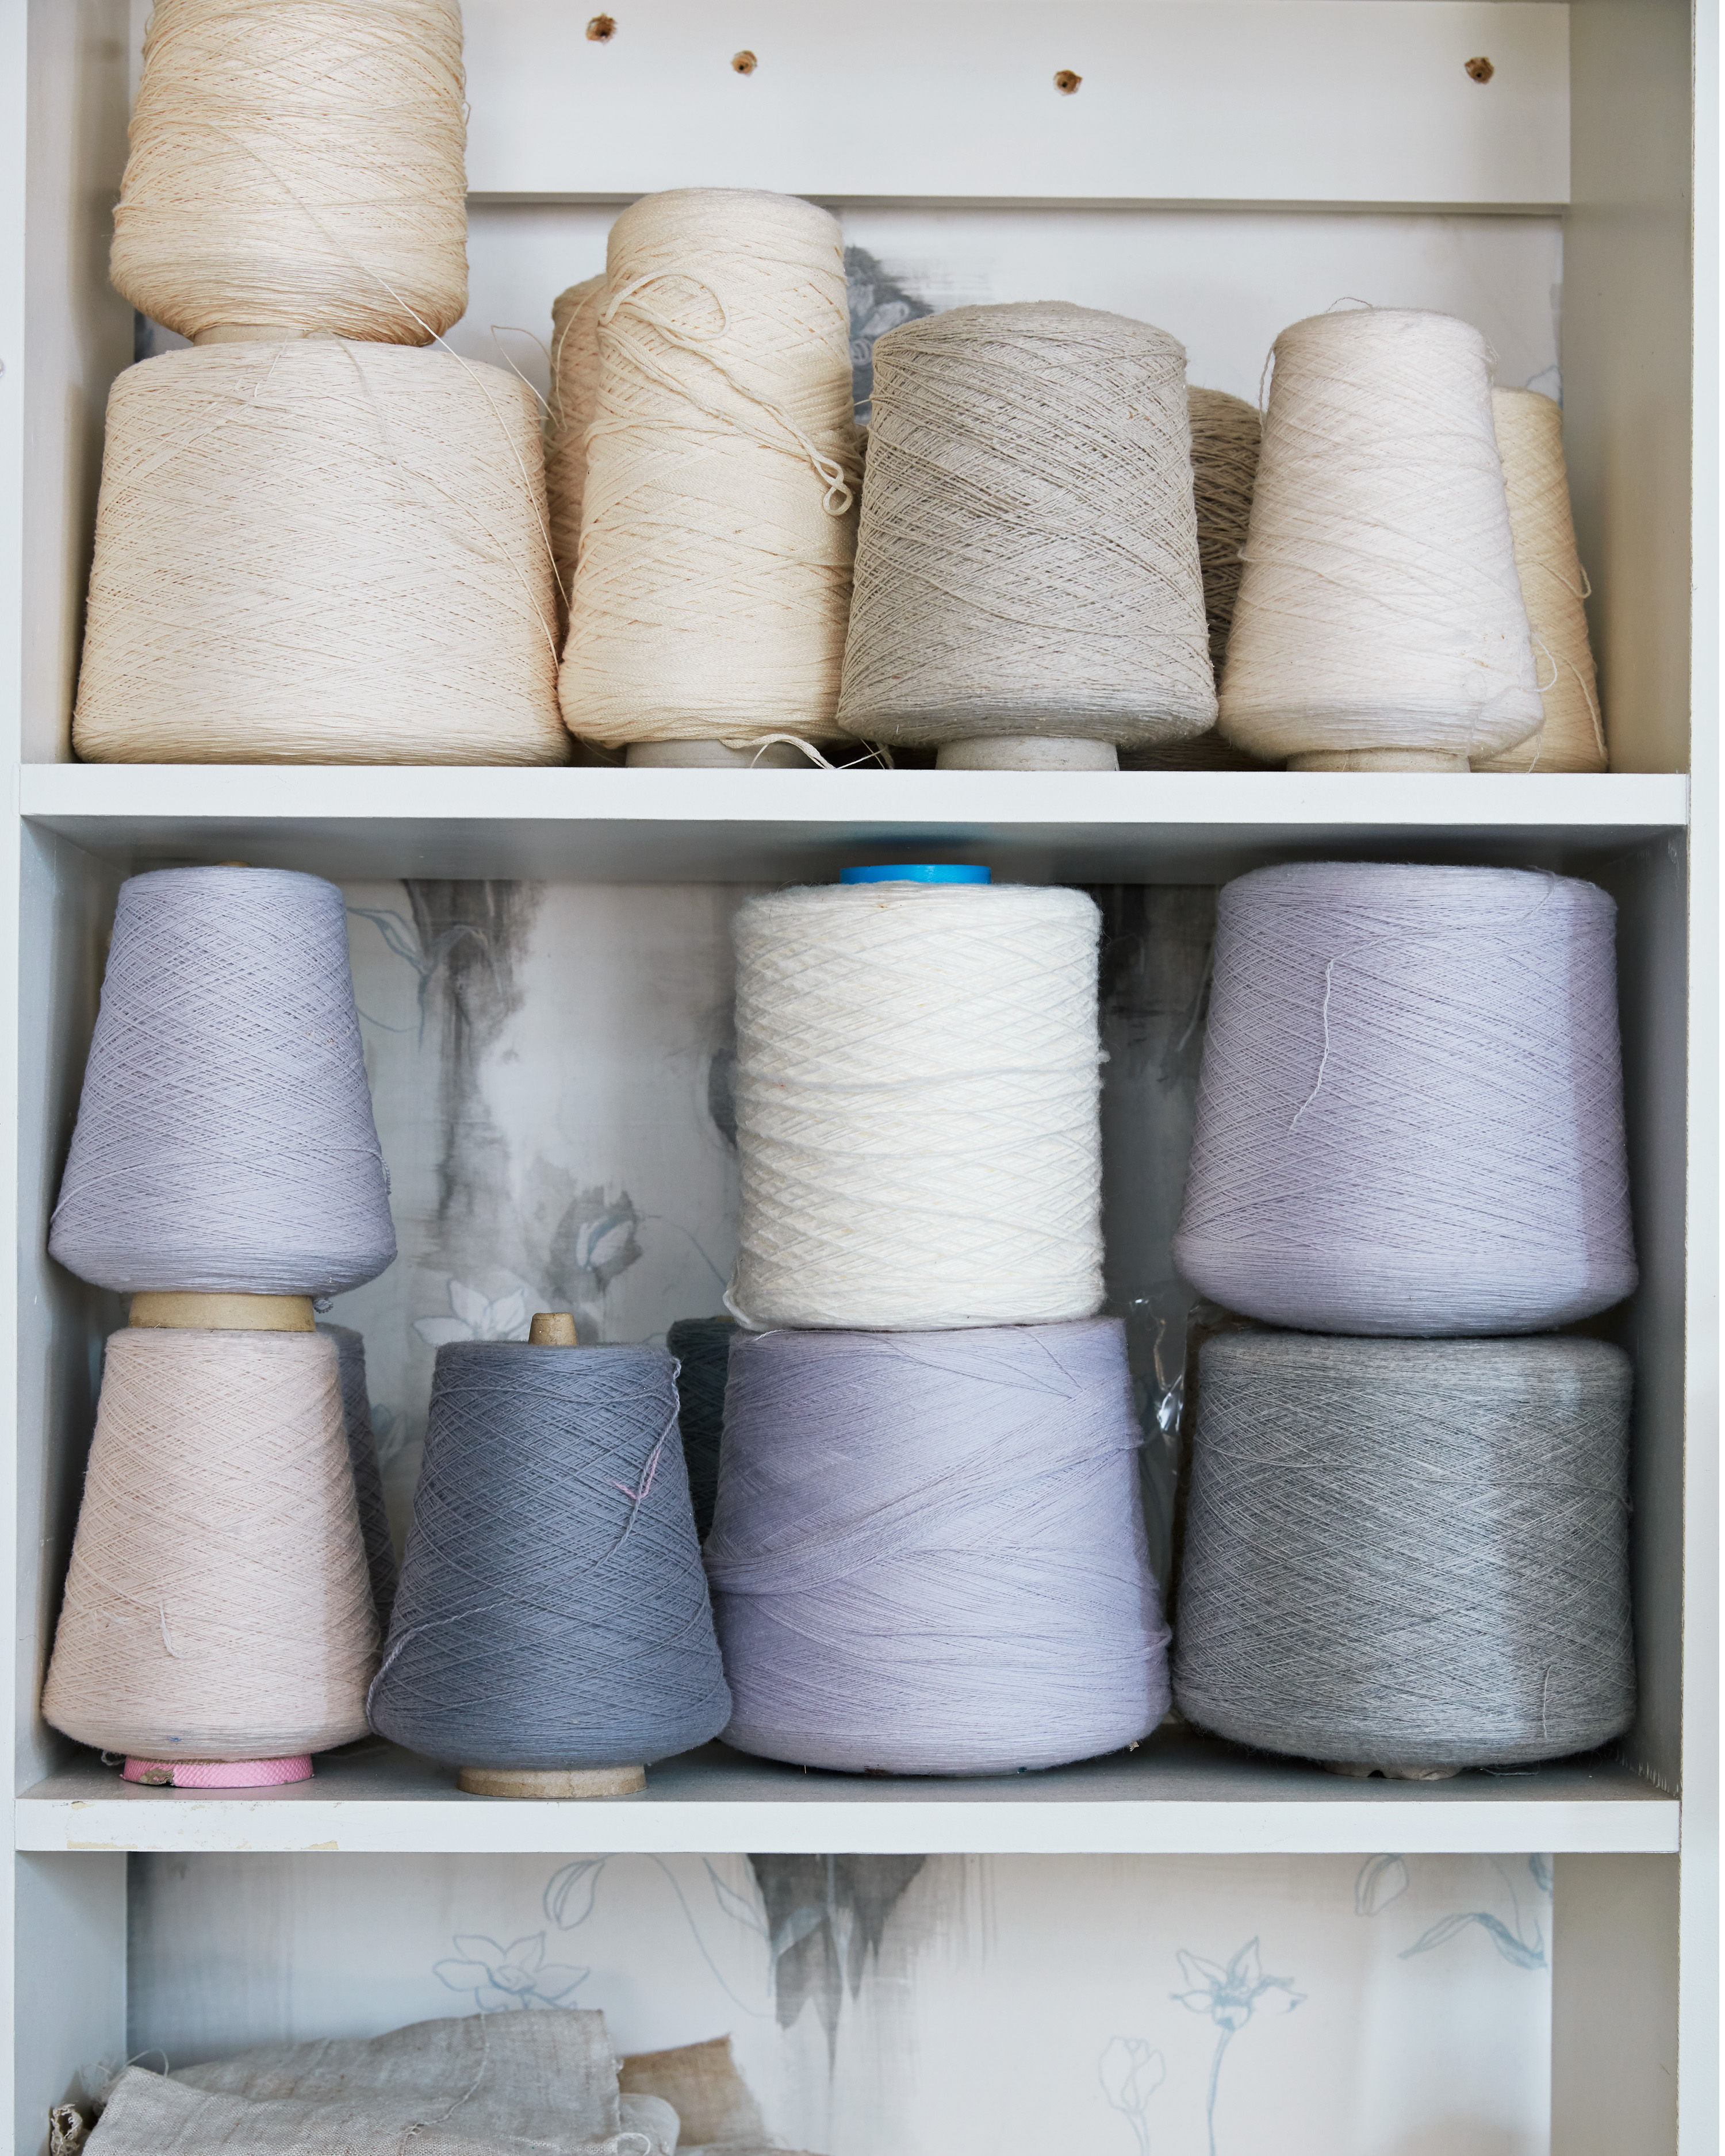 assorted spools of thread on white shelves